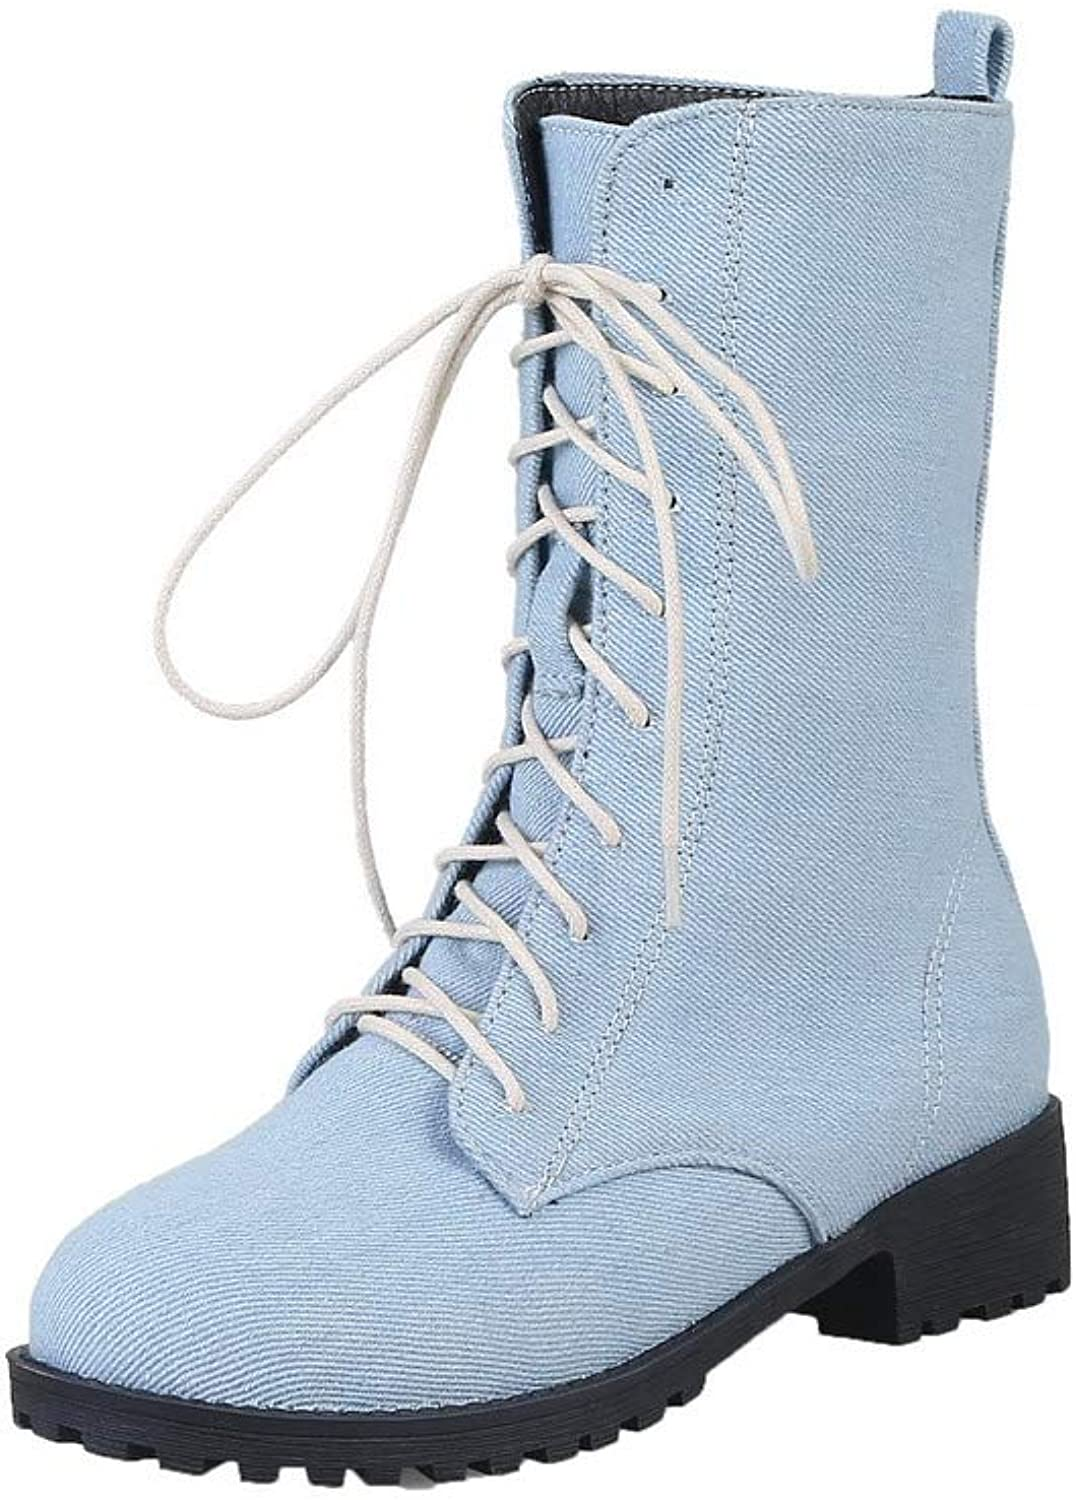 AmoonyFashion Women's Solid Low-Heels Round-Toe Denim Lace-Up Boots, BUSXT108511